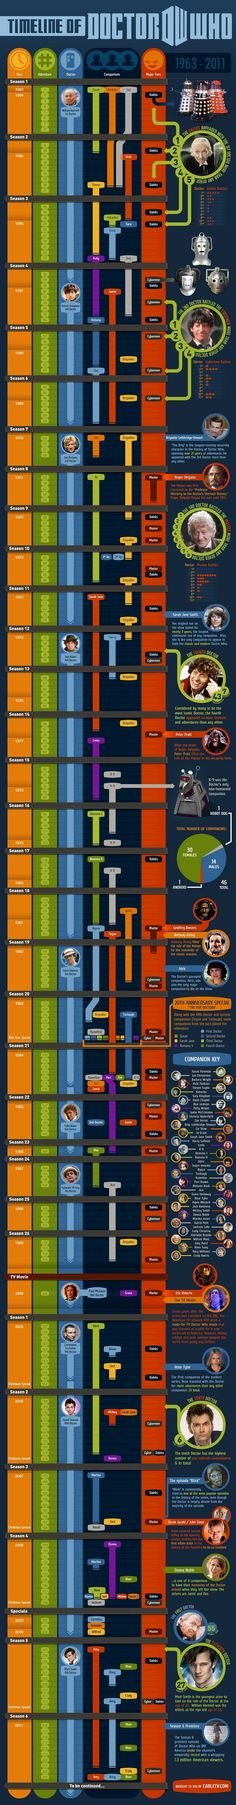 The timeline of Doctor Who